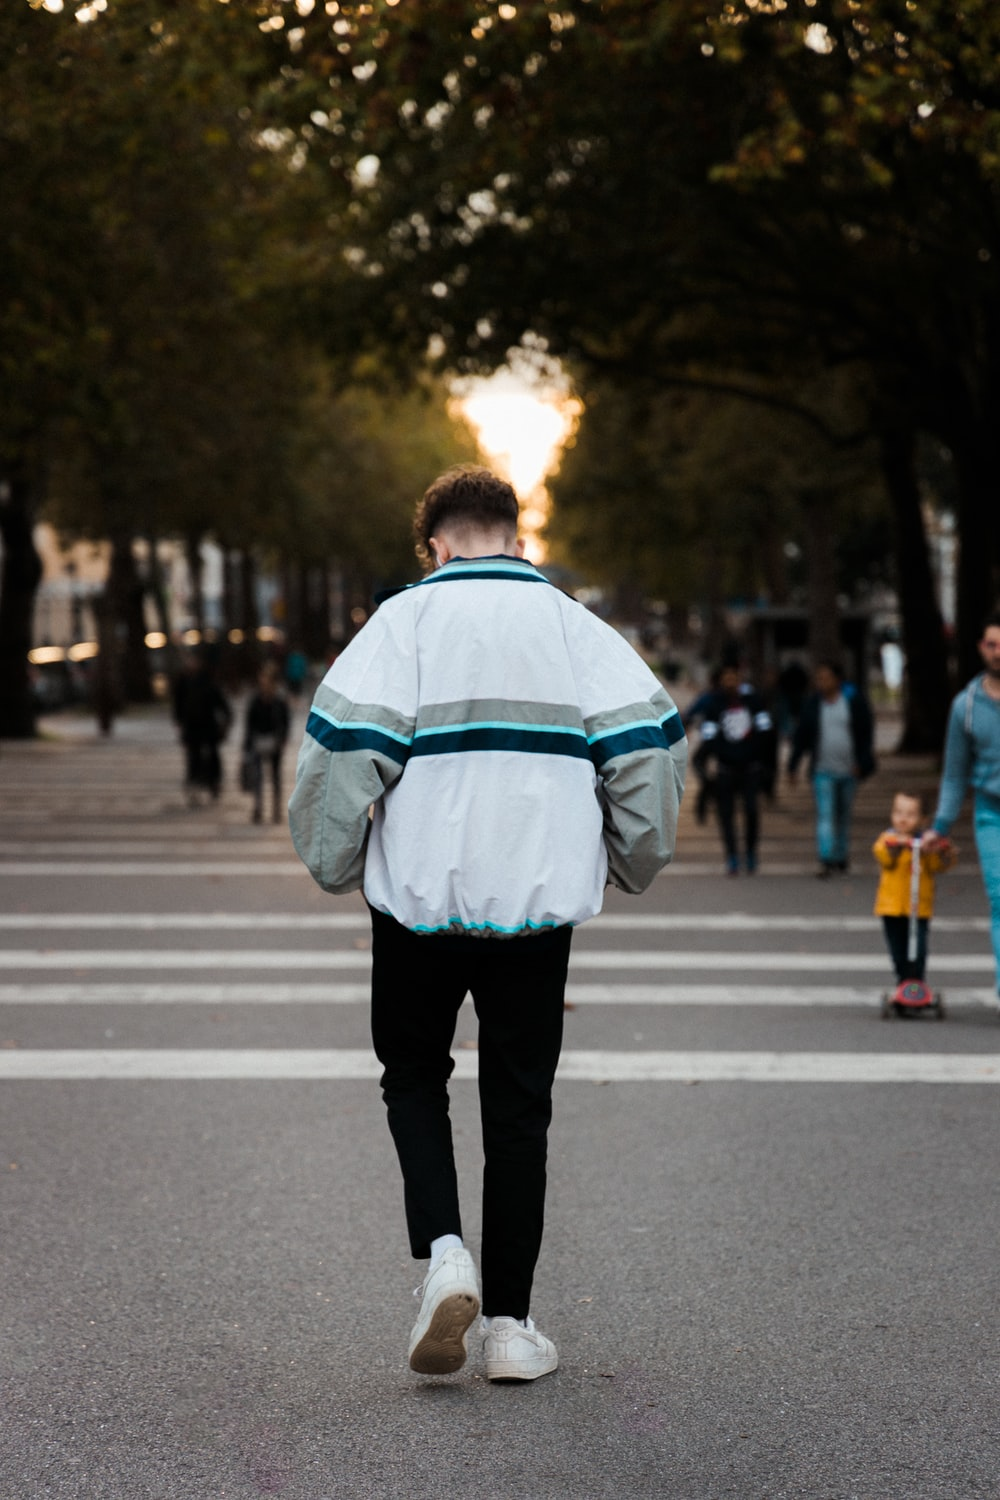 man wearing white and blue jacket and black jeans walking on street